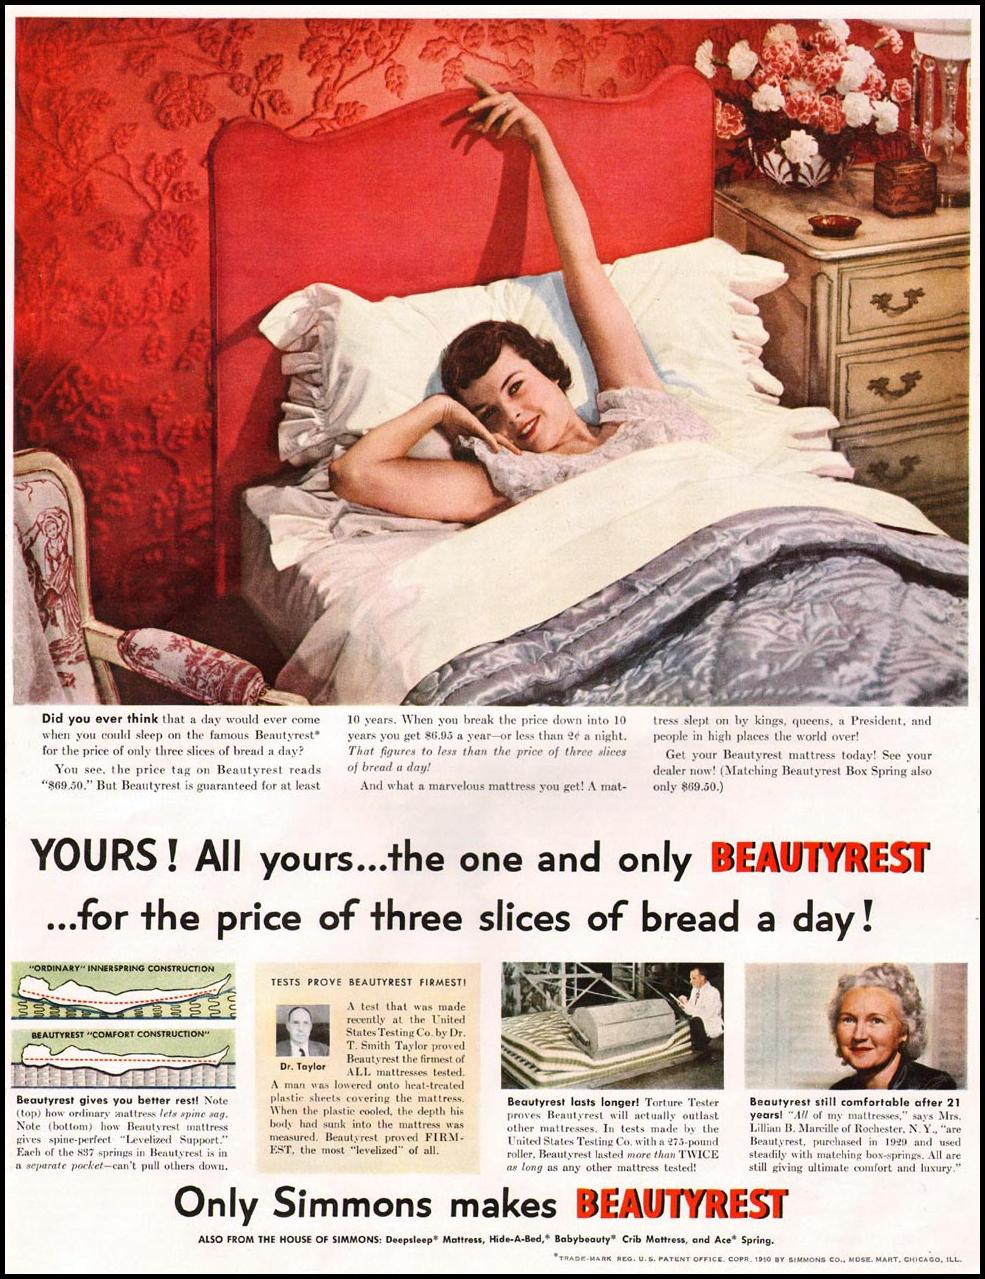 SIMMONS BEAUTYREST MATTRESS LADIES' HOME JOURNAL 11/01/1950 p. 195